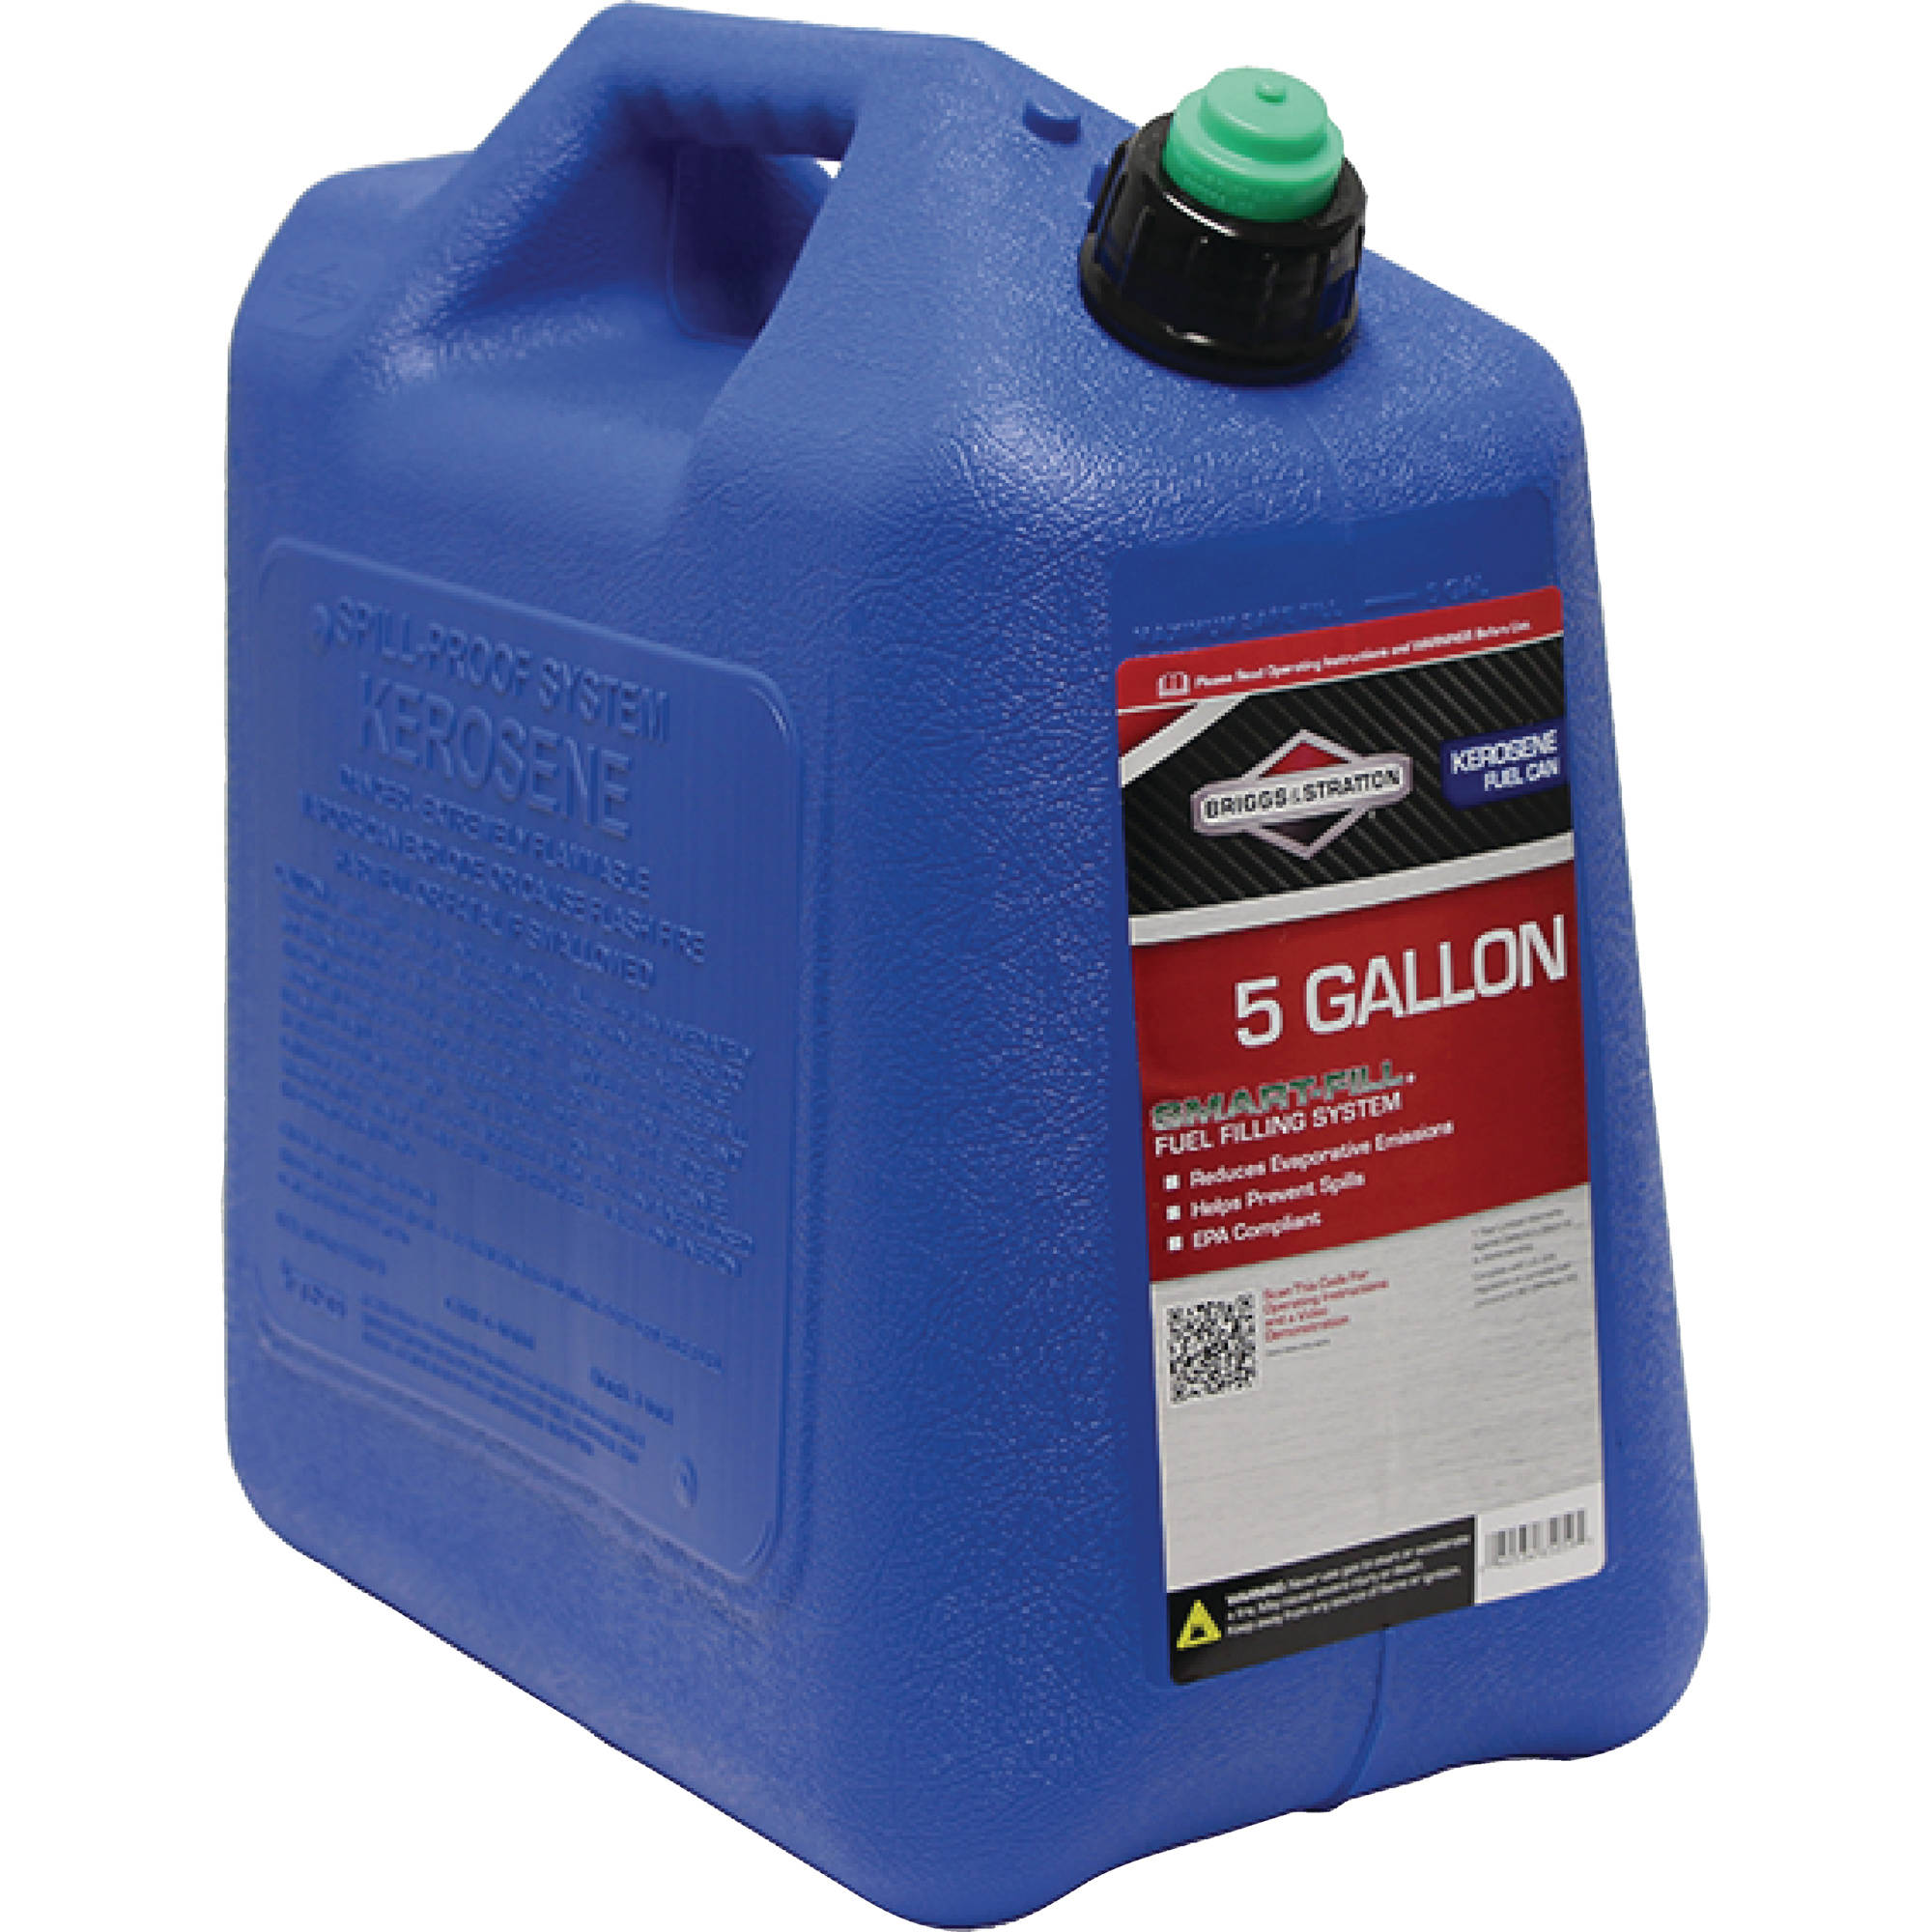 Briggs and Stratton 5-Gallon CARB Kerosene Jerry Jug, Blue